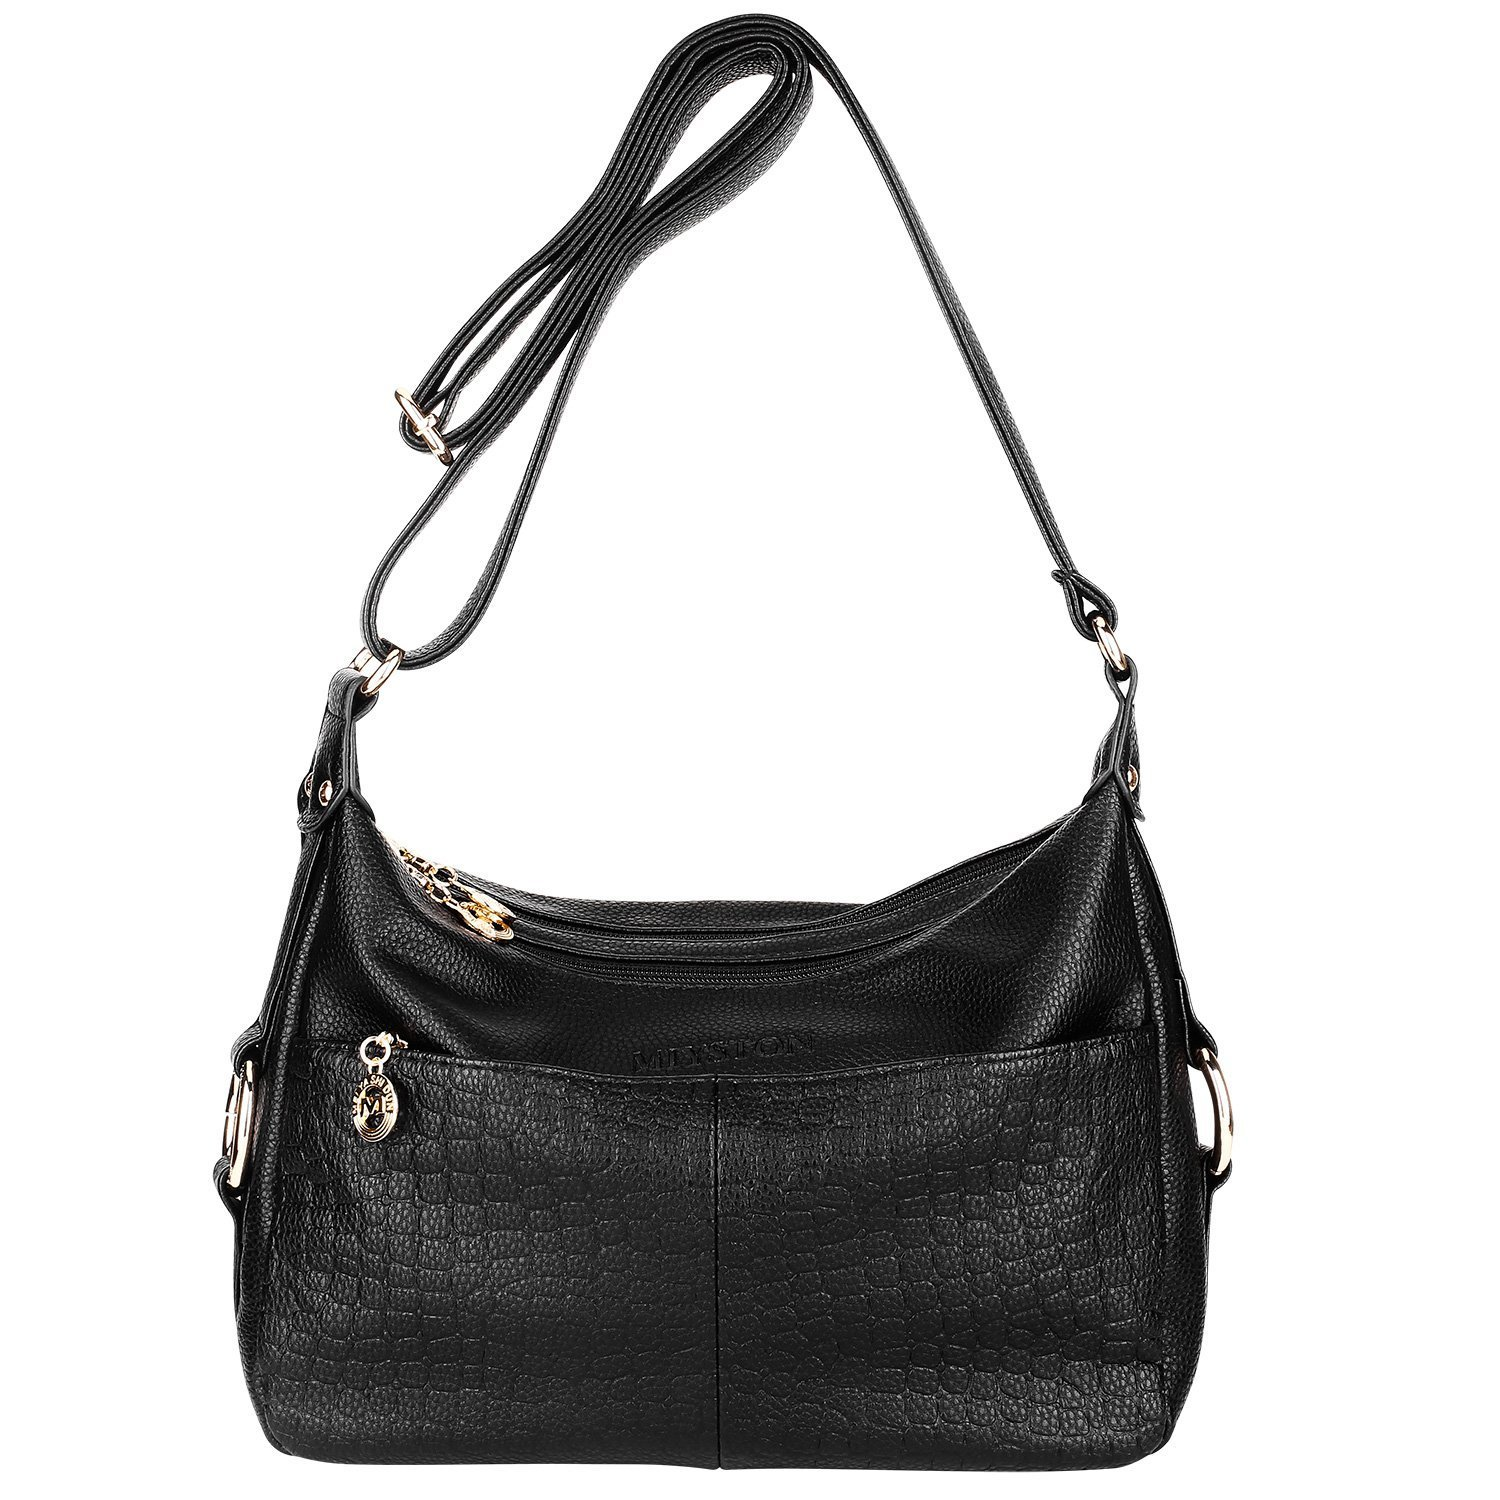 Women's Leather Shoulder Handbags Cross Body Bags Hobo Bag Satchel and Purse for Ladies (Black)